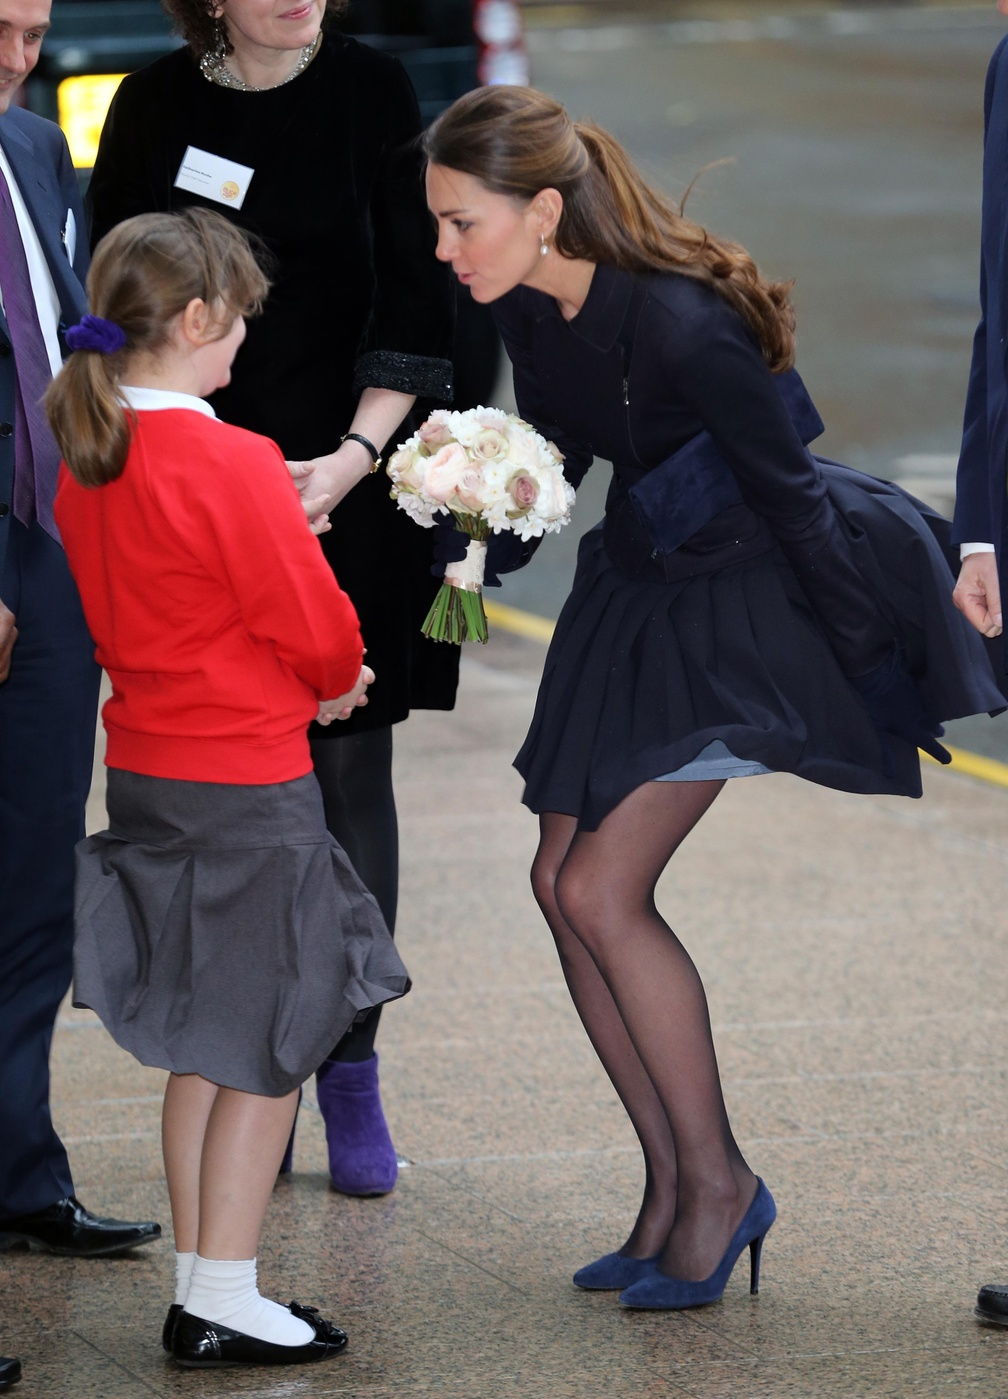 109016, LONDON, UNITED KINGDOM - Wednesday November 20, 2013. The Duchess of Cambridge seen leaving a forum for the charity Place2Be in London. **UK, FRANCE, AUS, NZ, CHINA, HONG KONG & TAIWAN OUT** Photograph: ? i-Images, PacificCoastNews**FEE MUST BE AGREED PRIOR TO USAGE** **E-TABLET/IPAD & MOBILE PHONE APP PUBLISHING REQUIRES ADDITIONAL FEES** LOS ANGELES OFFICE: +1 310 822 0419 LONDON OFFICE: +44 20 8090 4079